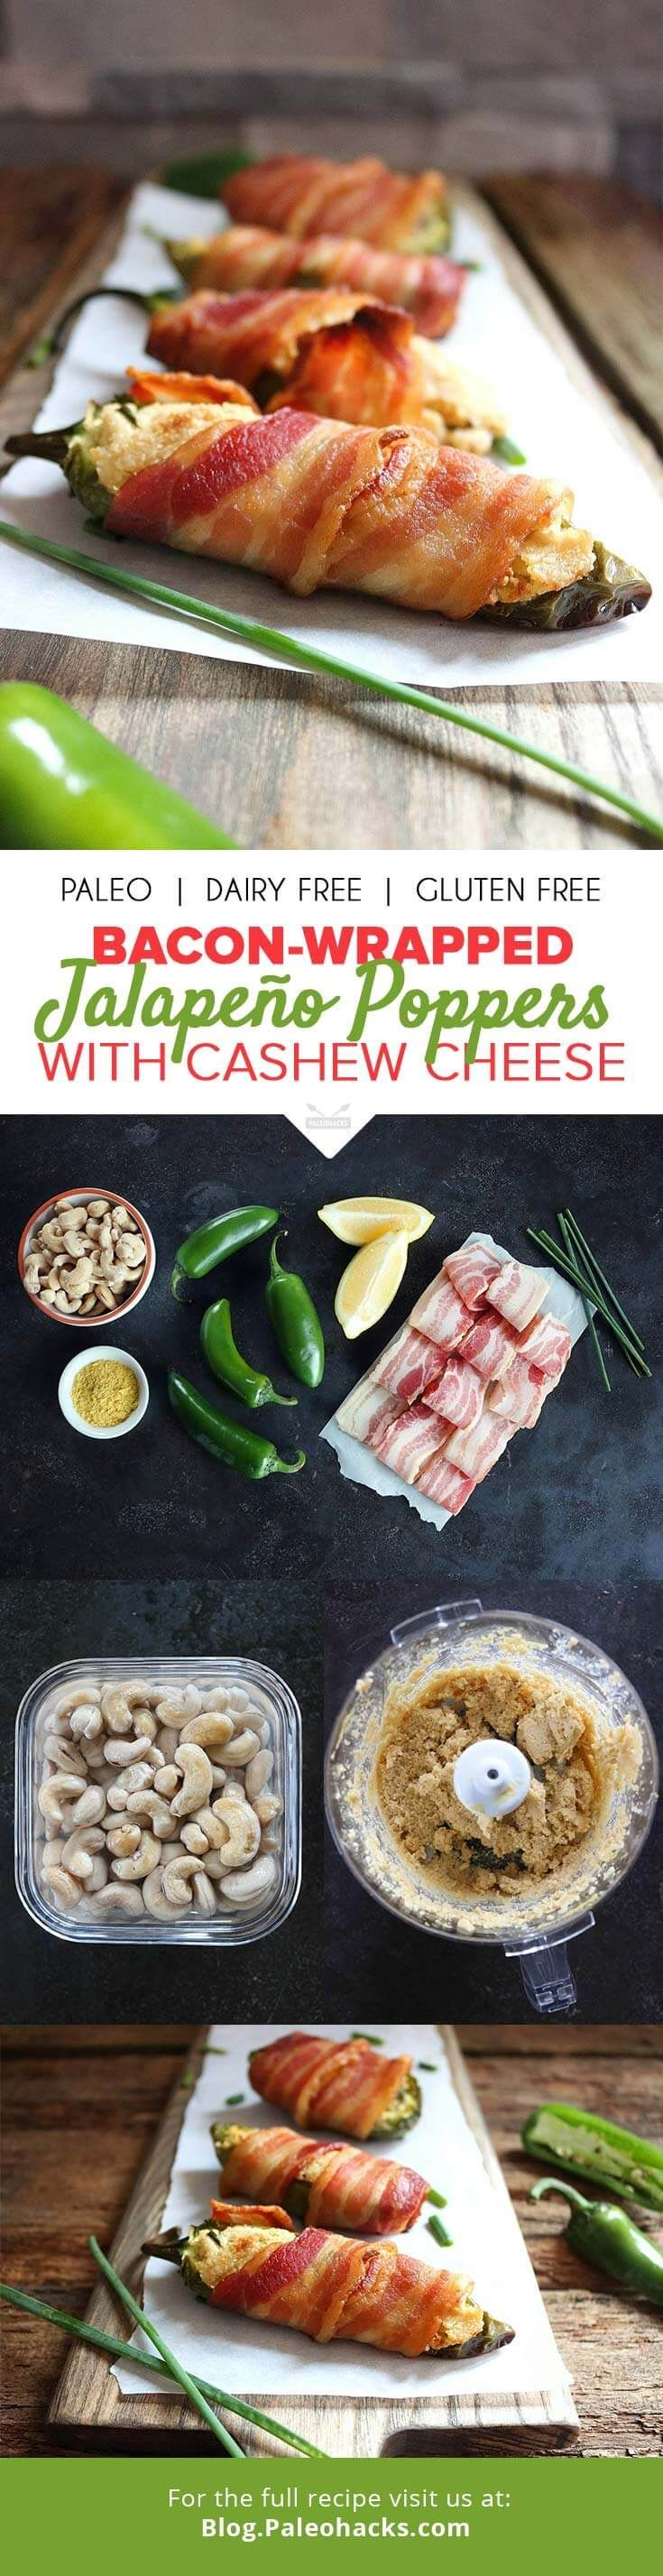 How do you make cheese-stuffed jalapeño poppers better? You wrap it in bacon, that's how. Get the recipe here: http://paleo.co/baconpoppers